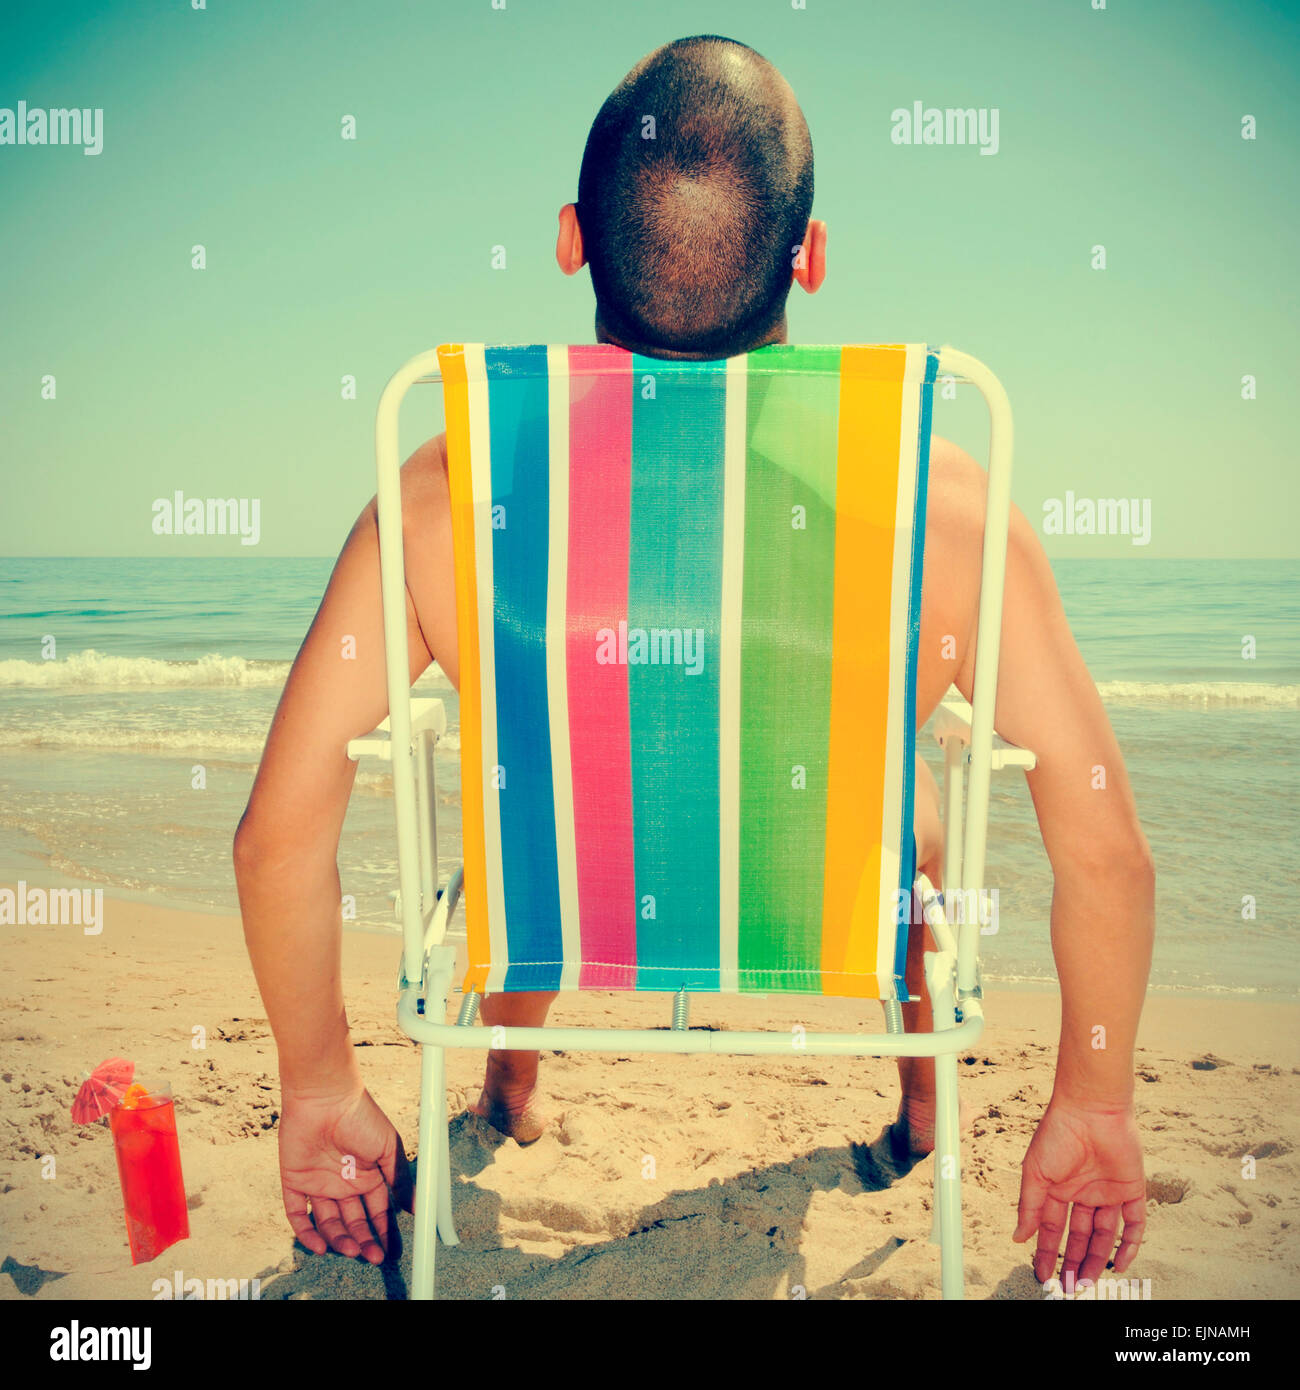 picture of a man sunbathing on a deckchair on the beach with a cocktail, with a retro effect - Stock Image